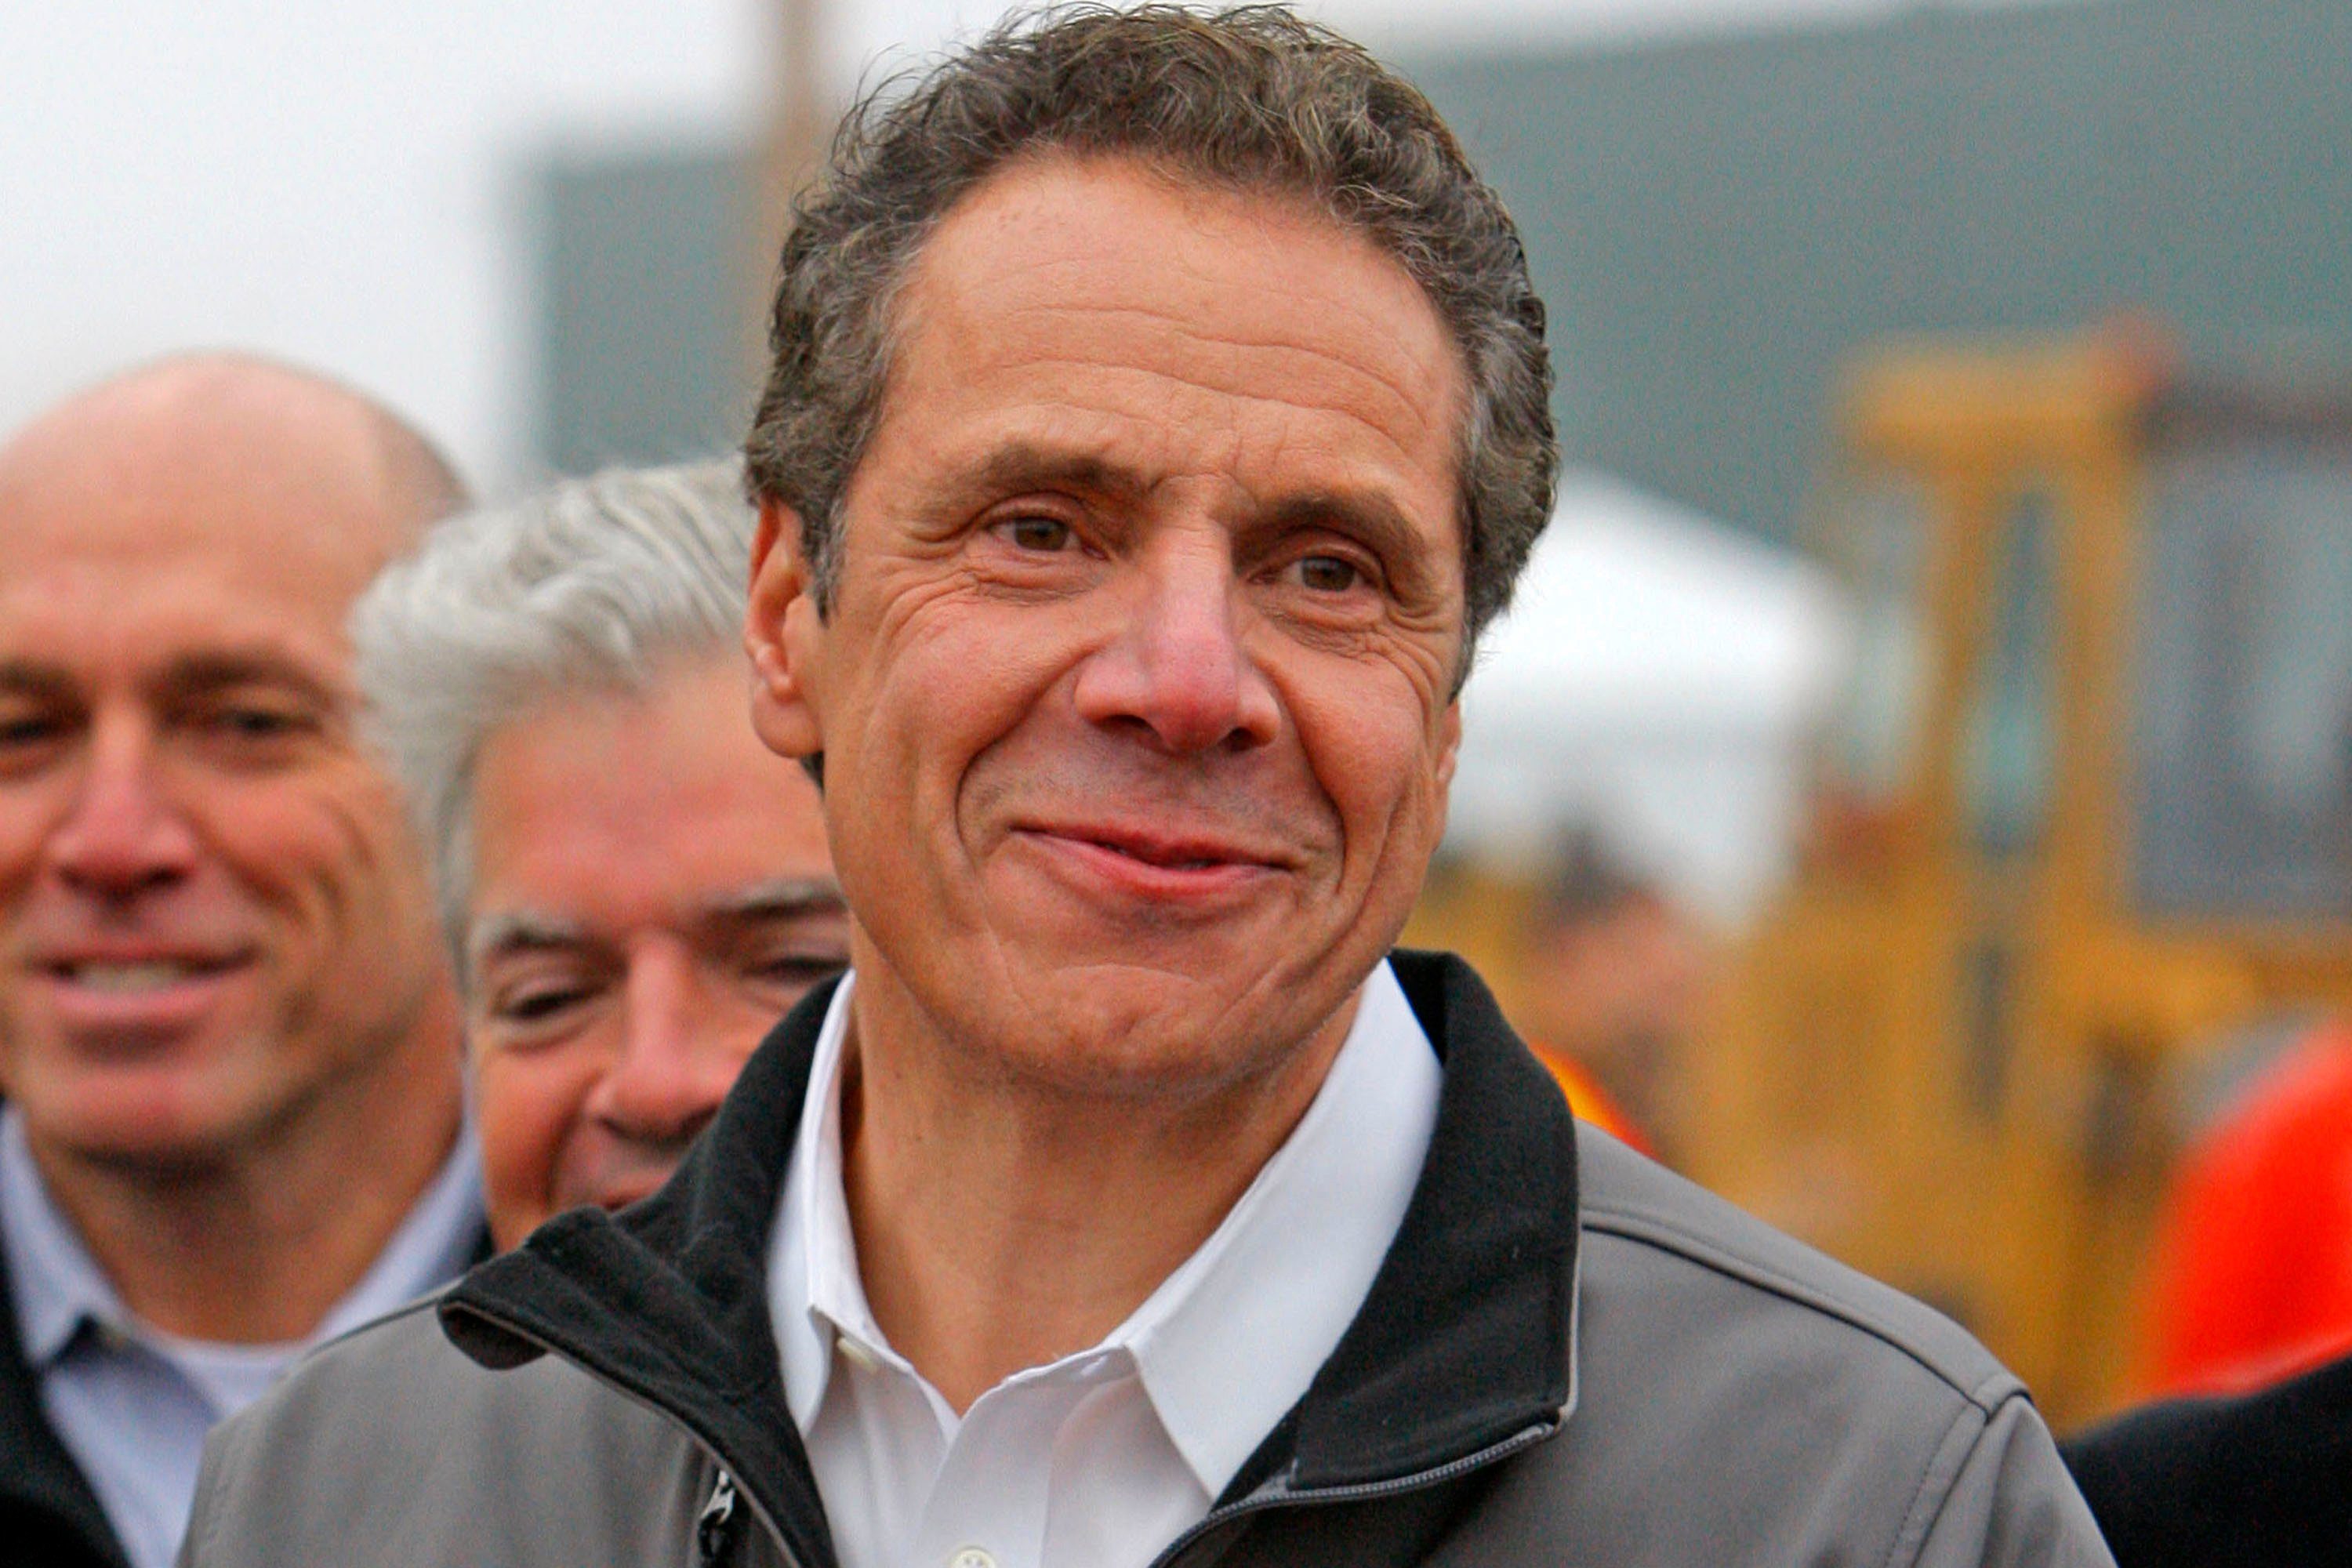 NY's biggest union backs Cuomo's re-election campaign